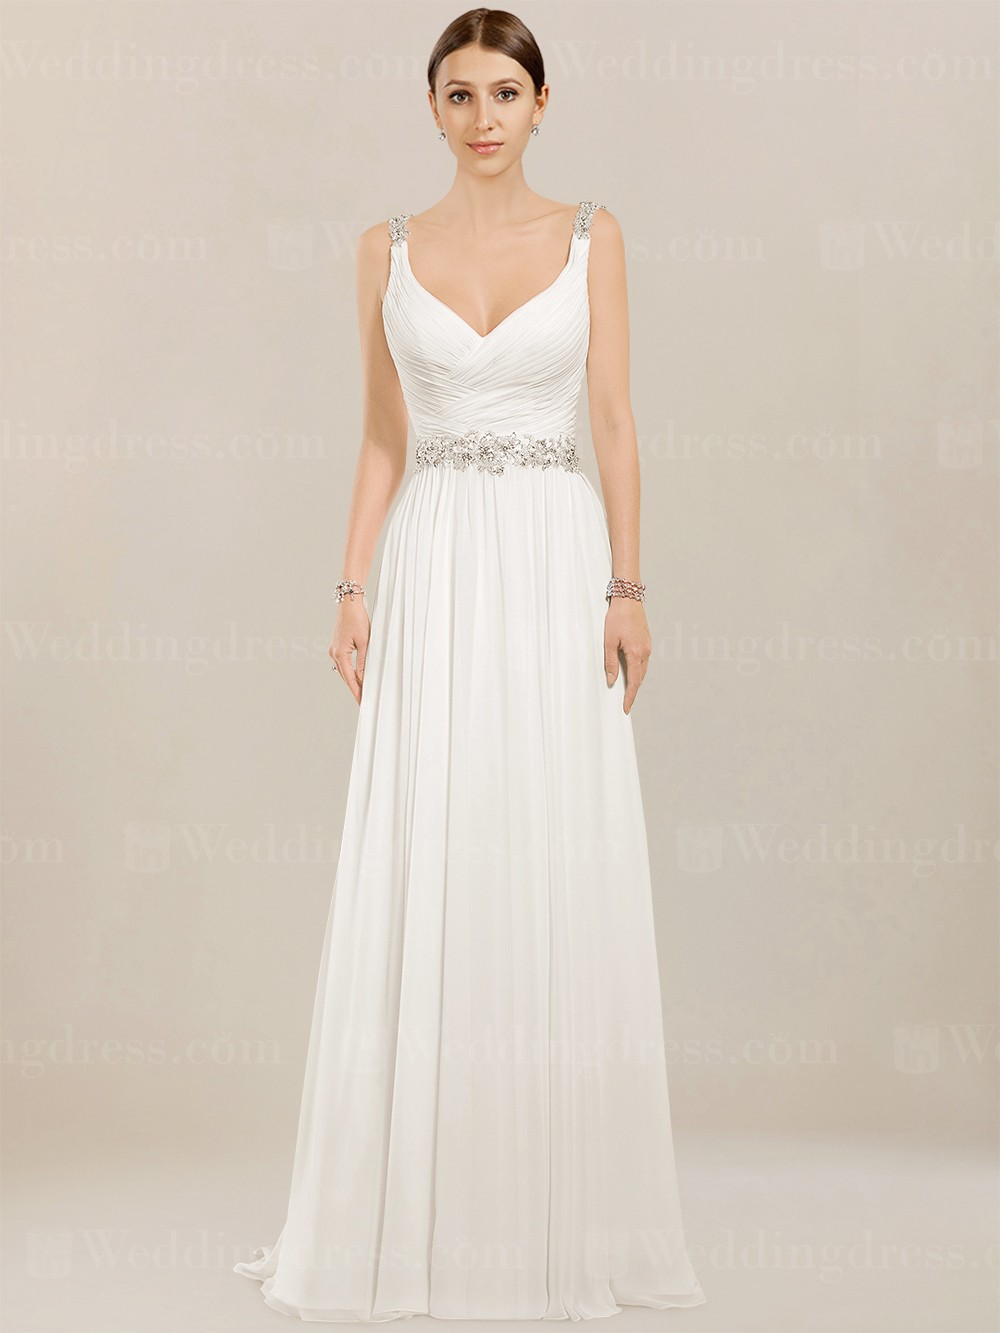 InWeddingDress Has Released 2016 Beach Wedding Dress